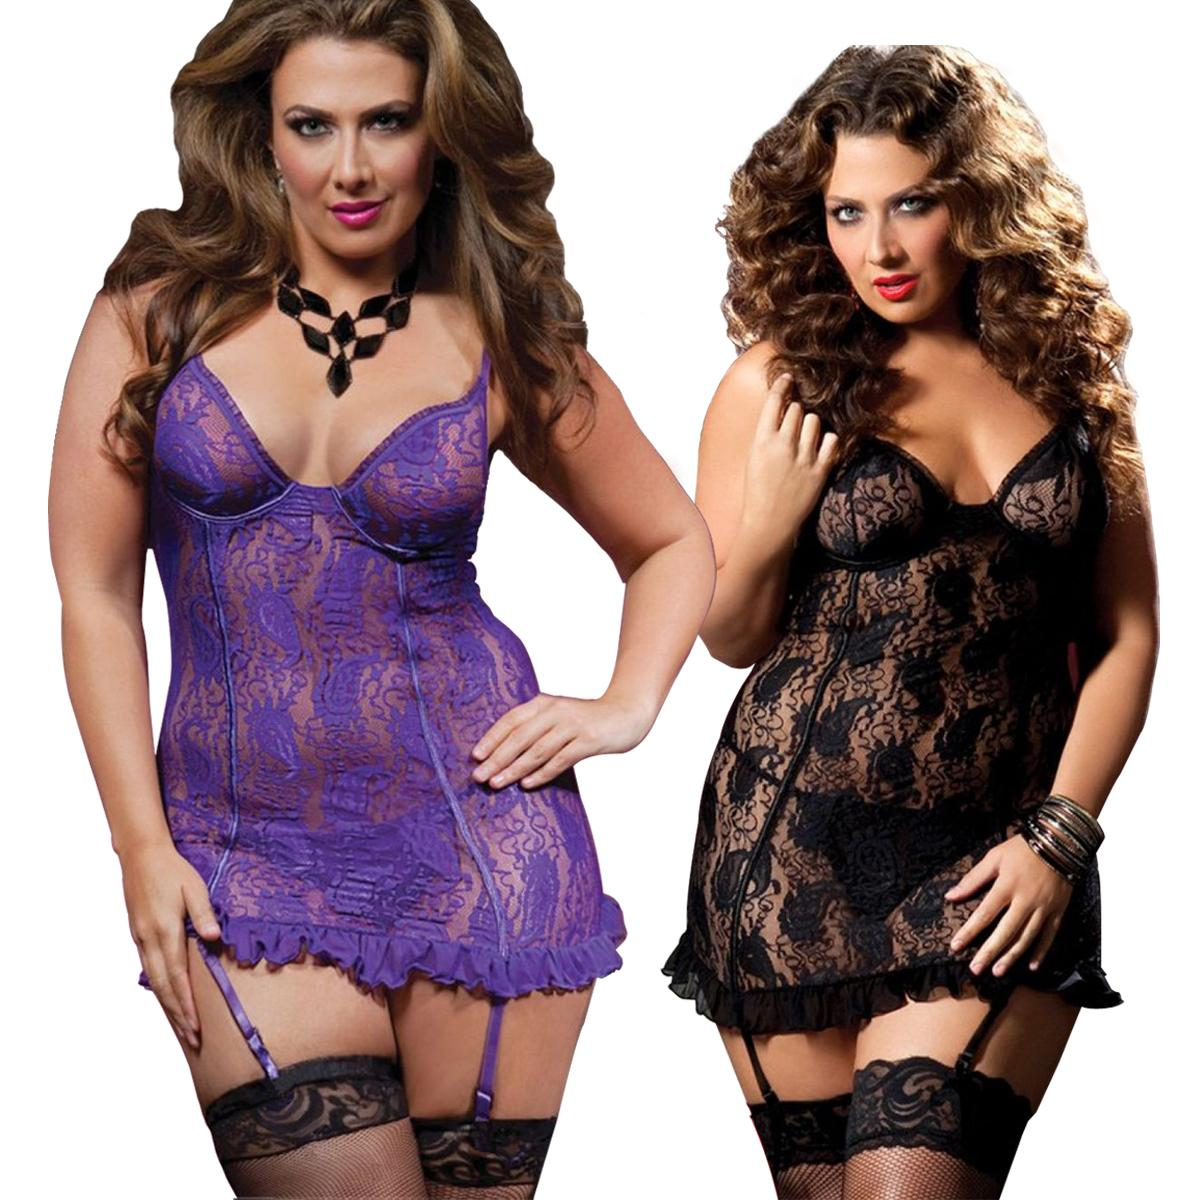 f7feb66d148 Sexy Black Purple Women Lingerie Plus Size S M L XL 2X XXXL 4X 5XL 6XL Lace  Lingerie Hot Underwear Night Sleepwear Camisole D18110801 Sexy Support  Nightwear ...